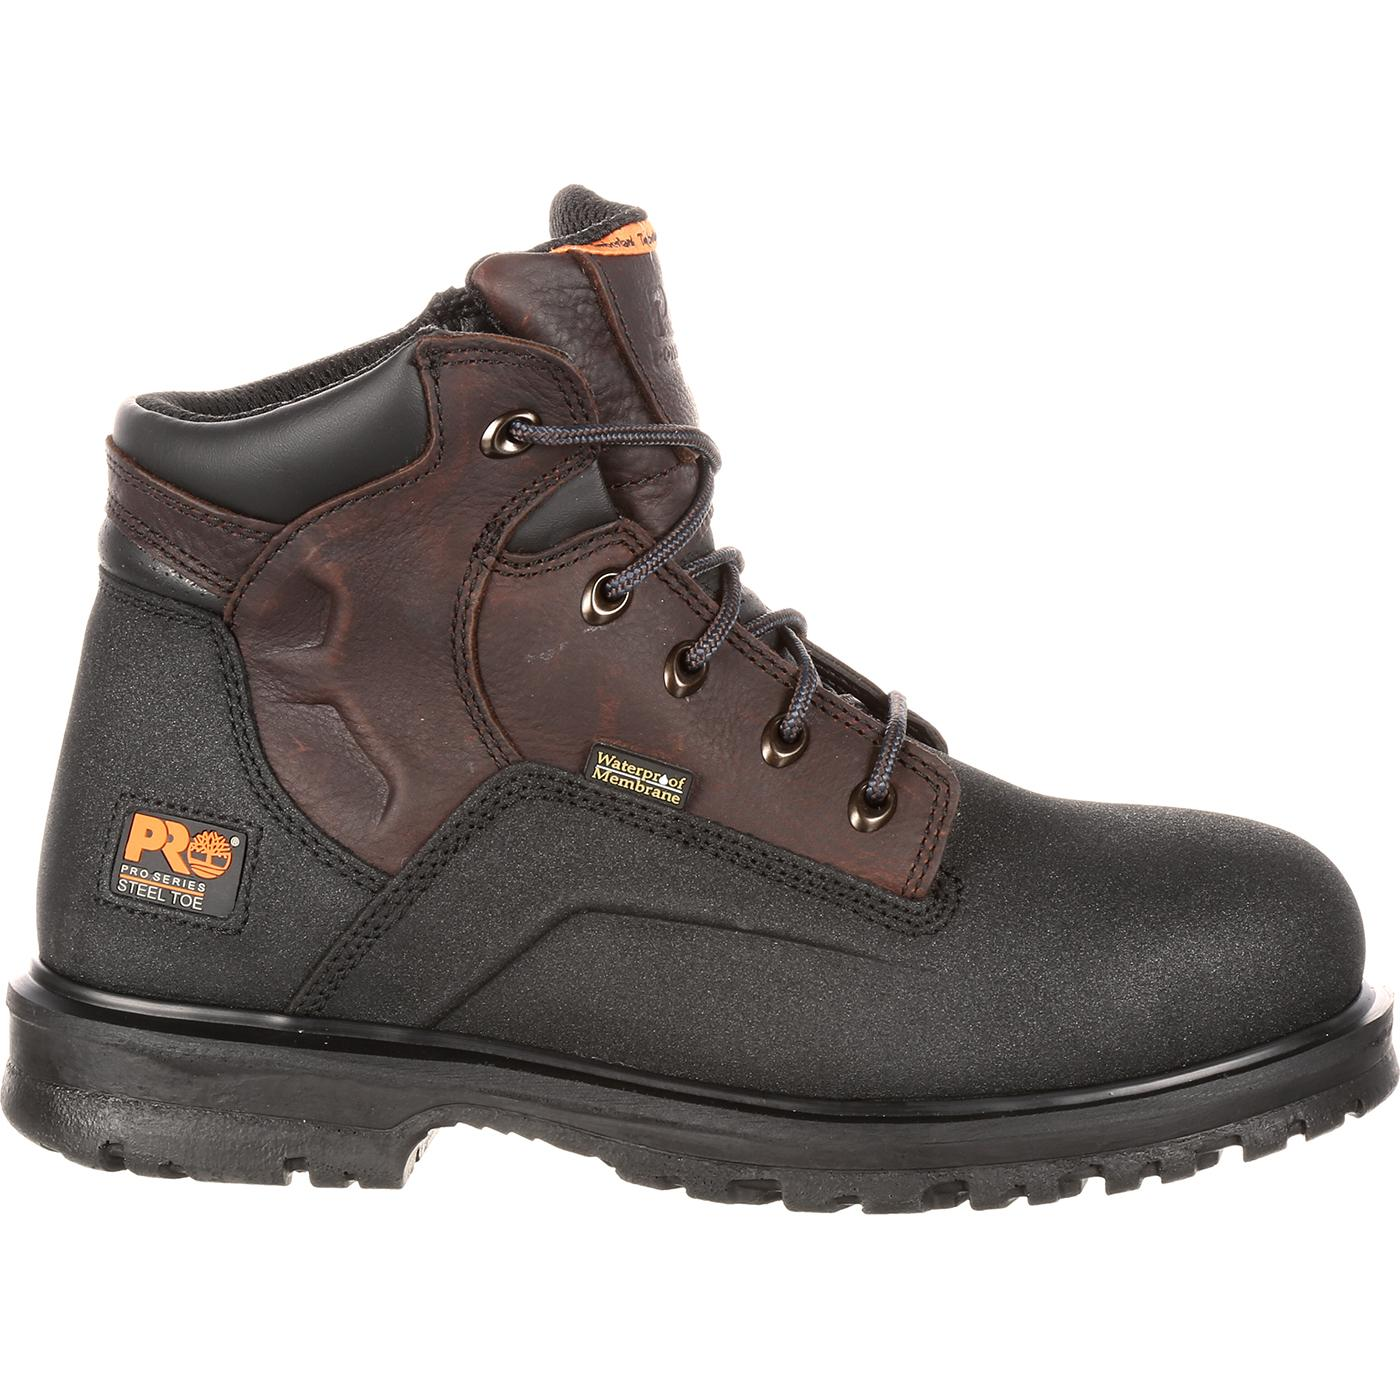 c6890c82356 Timberland PRO Powerwelt Steel Toe Waterproof Work Boot